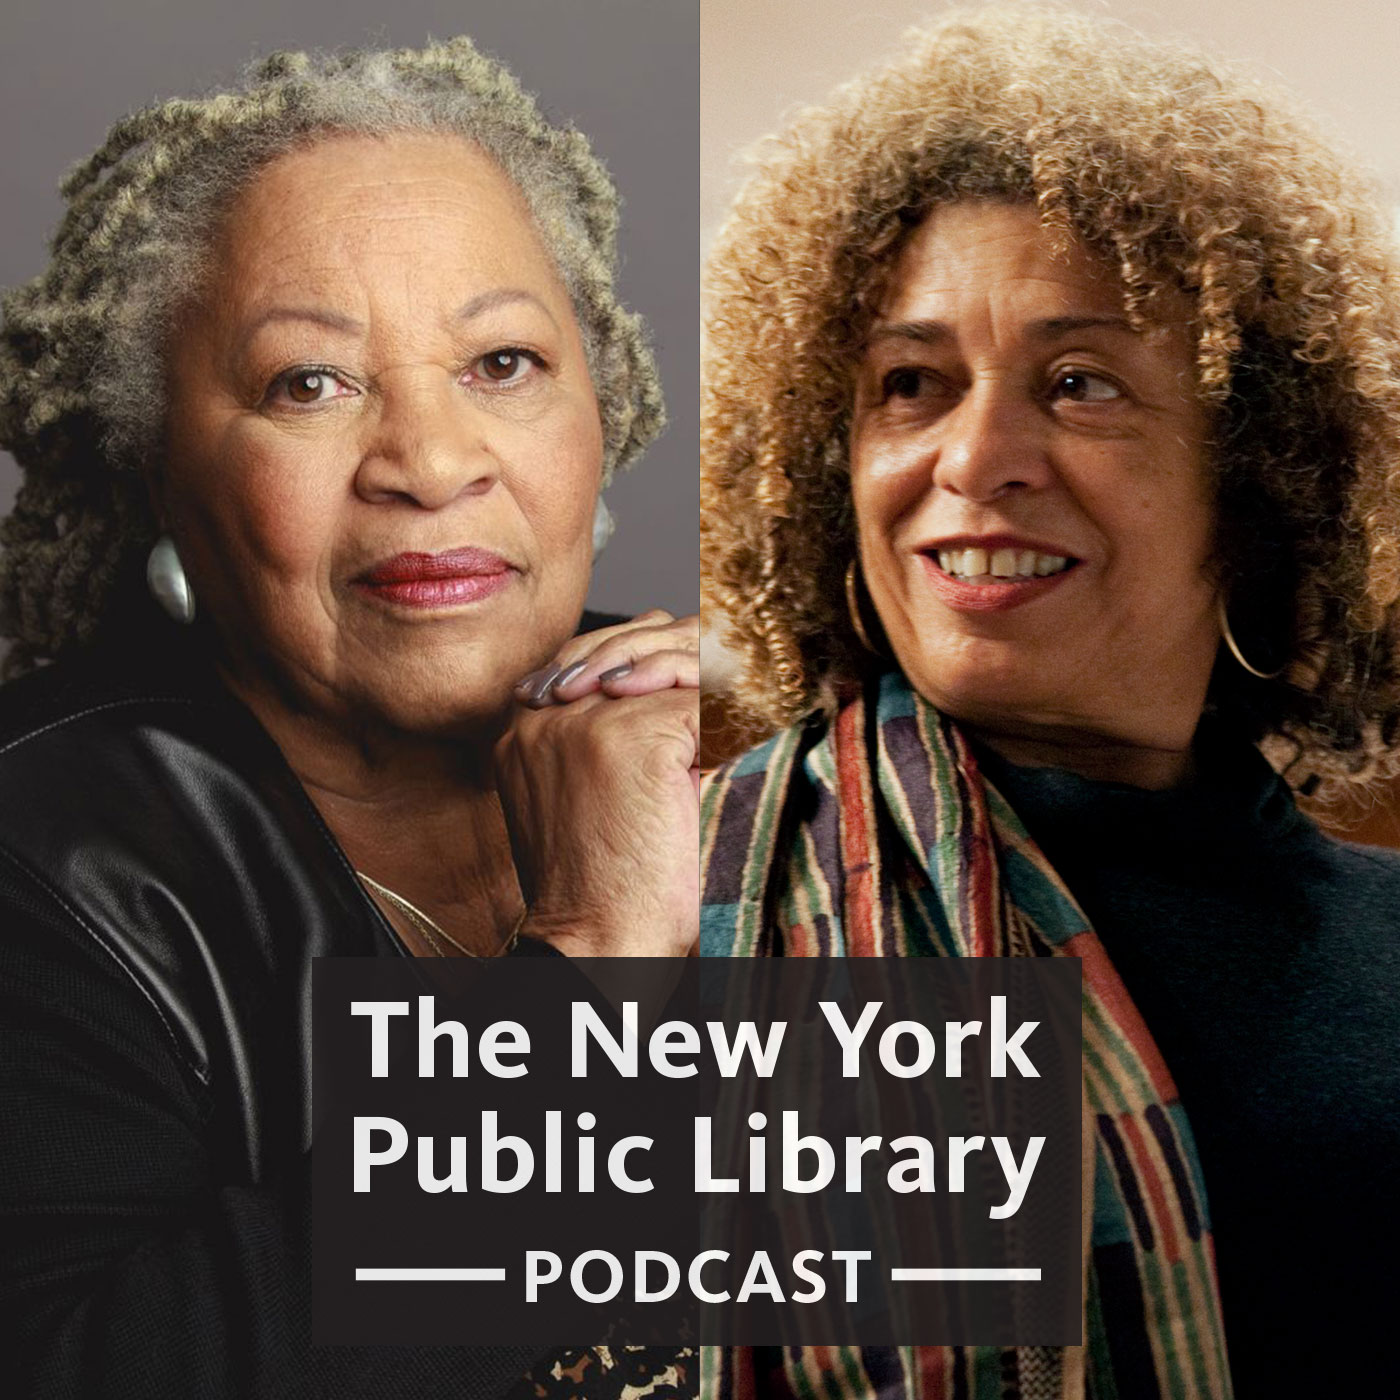 Toni Morrison and Angela Davis on Connecting for Progress